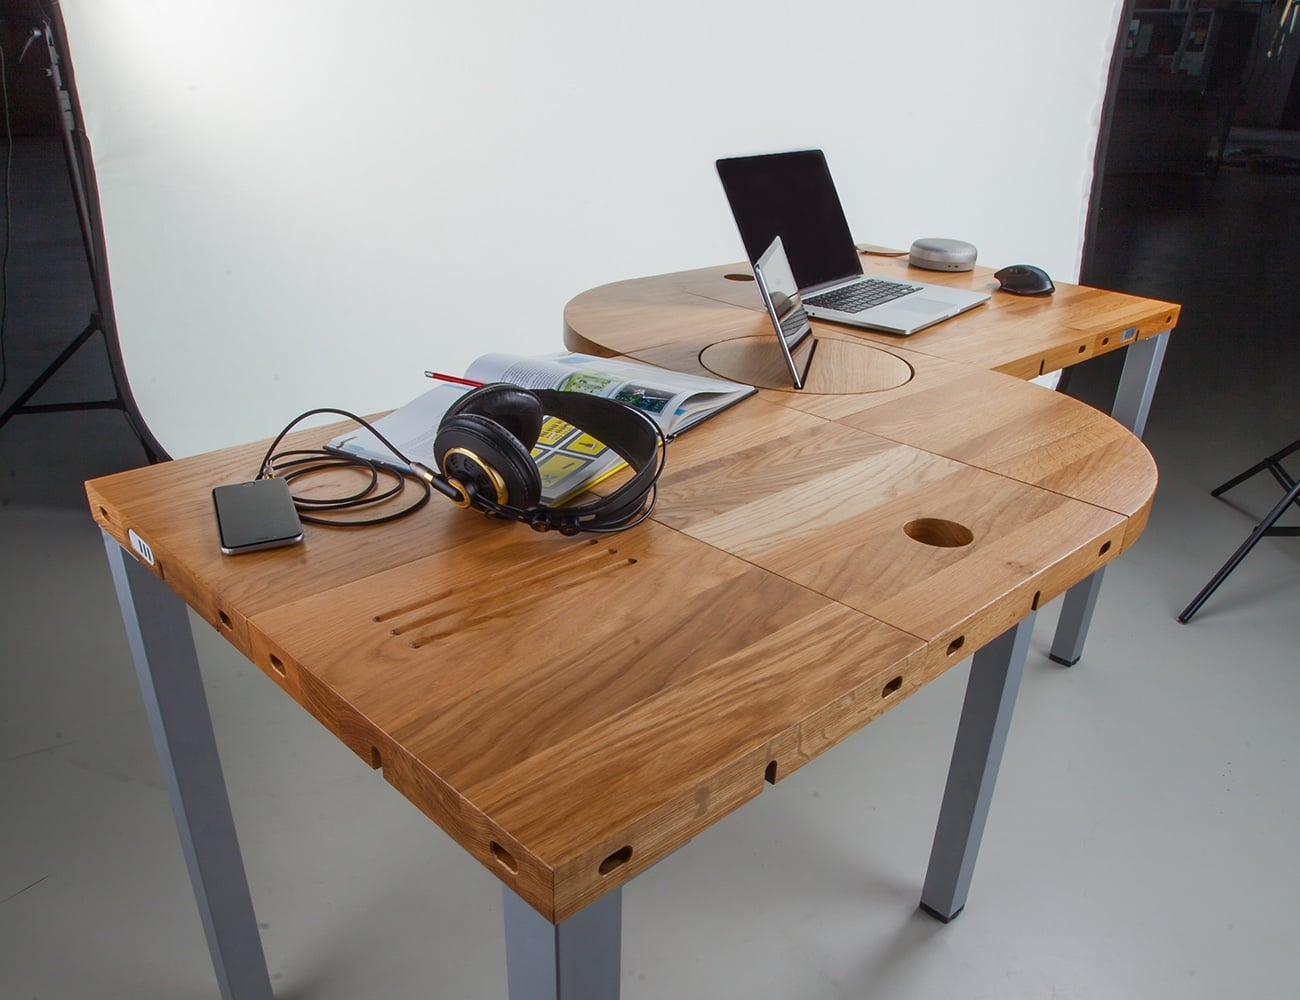 Workstation Furniture Modulos Adjustable Modular Desk Gadget Flow